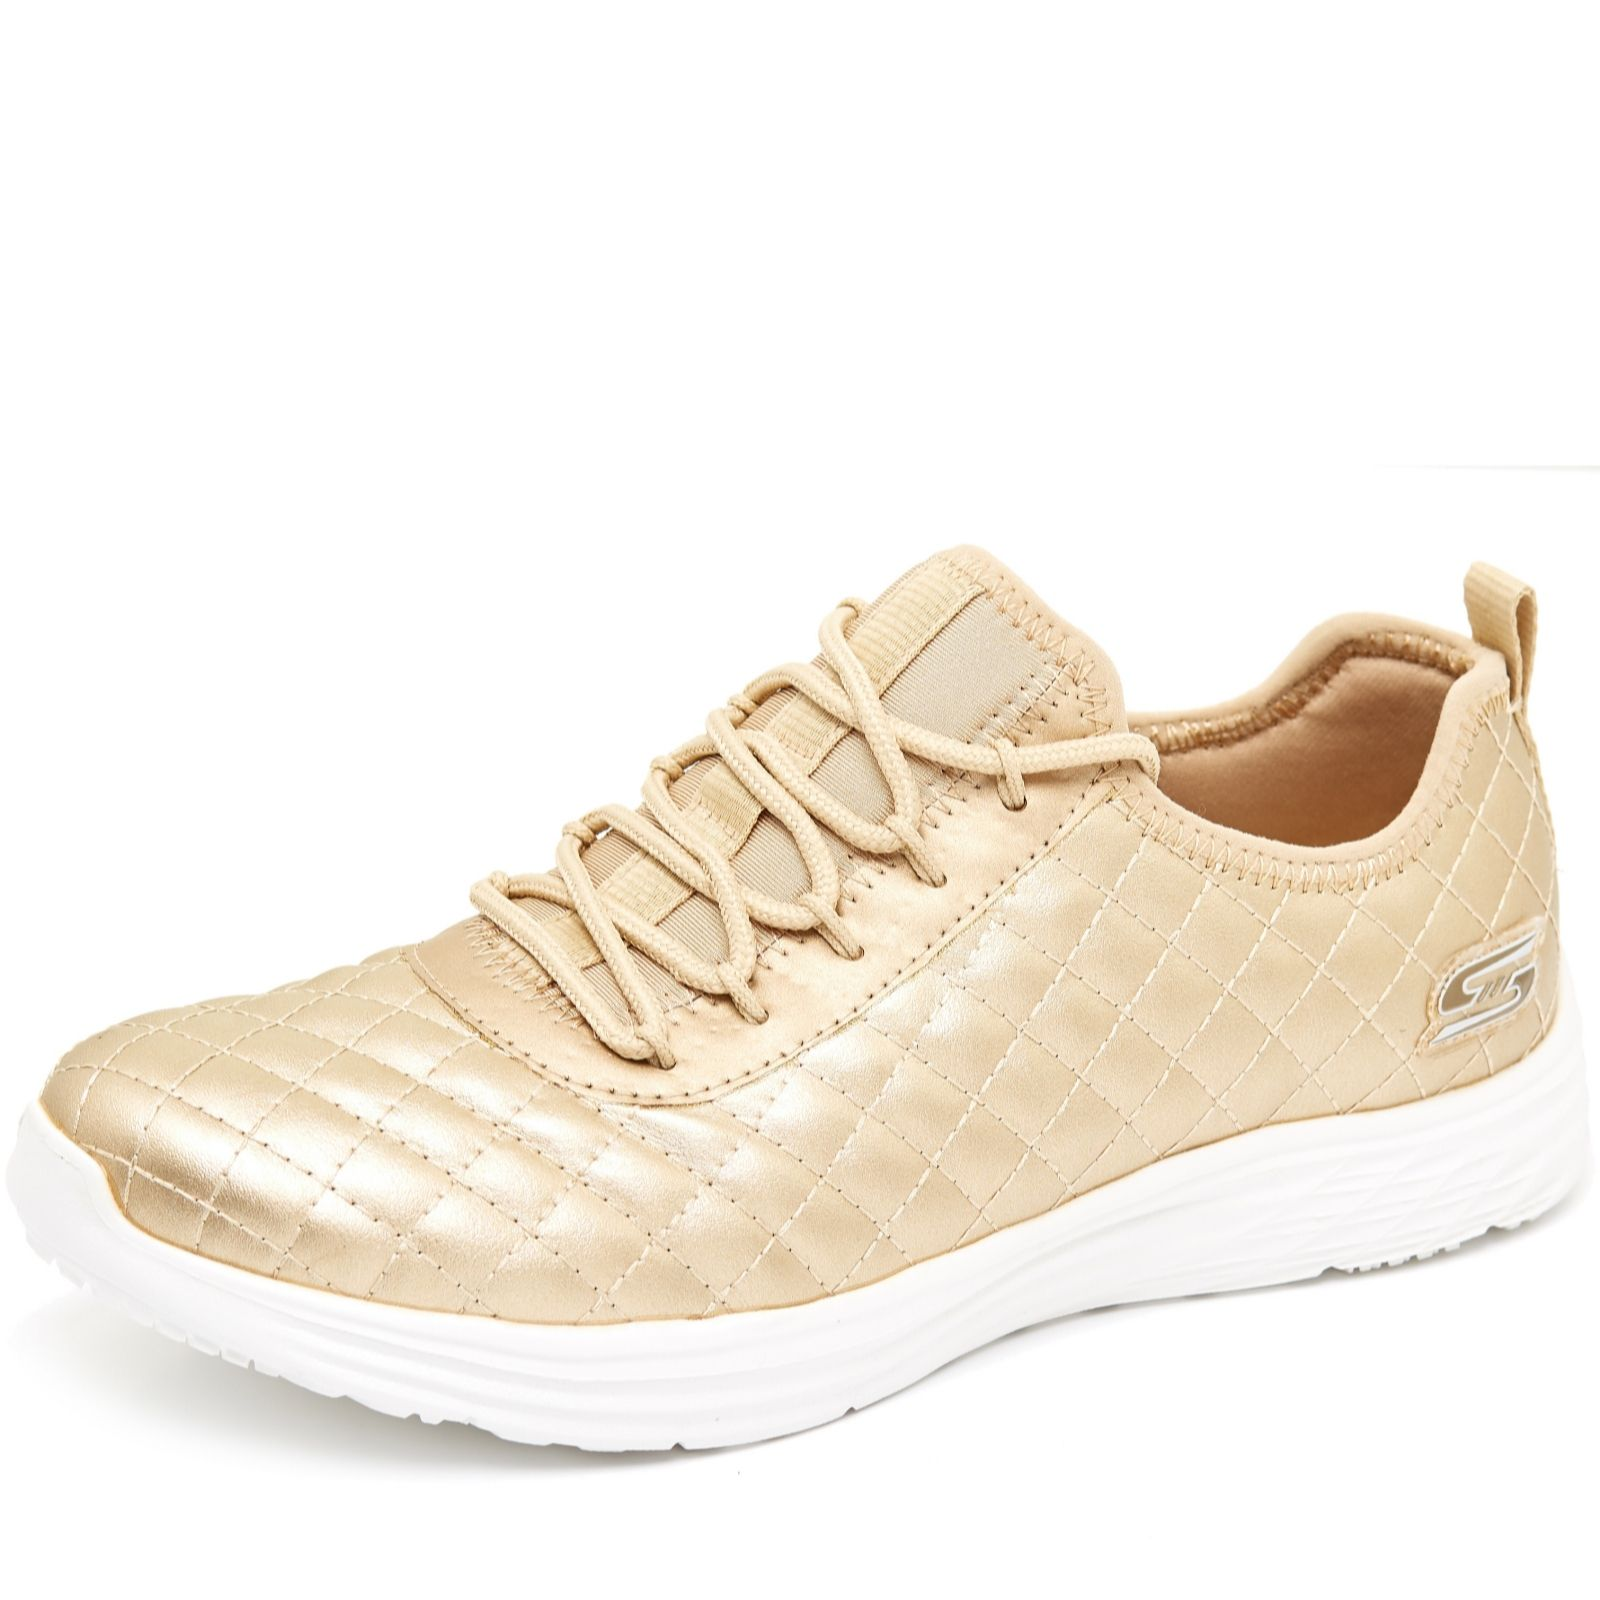 acd7abea177a Skechers Bobs Swift Social Hustle Metallic Quilted Lace Shoe - QVC UK